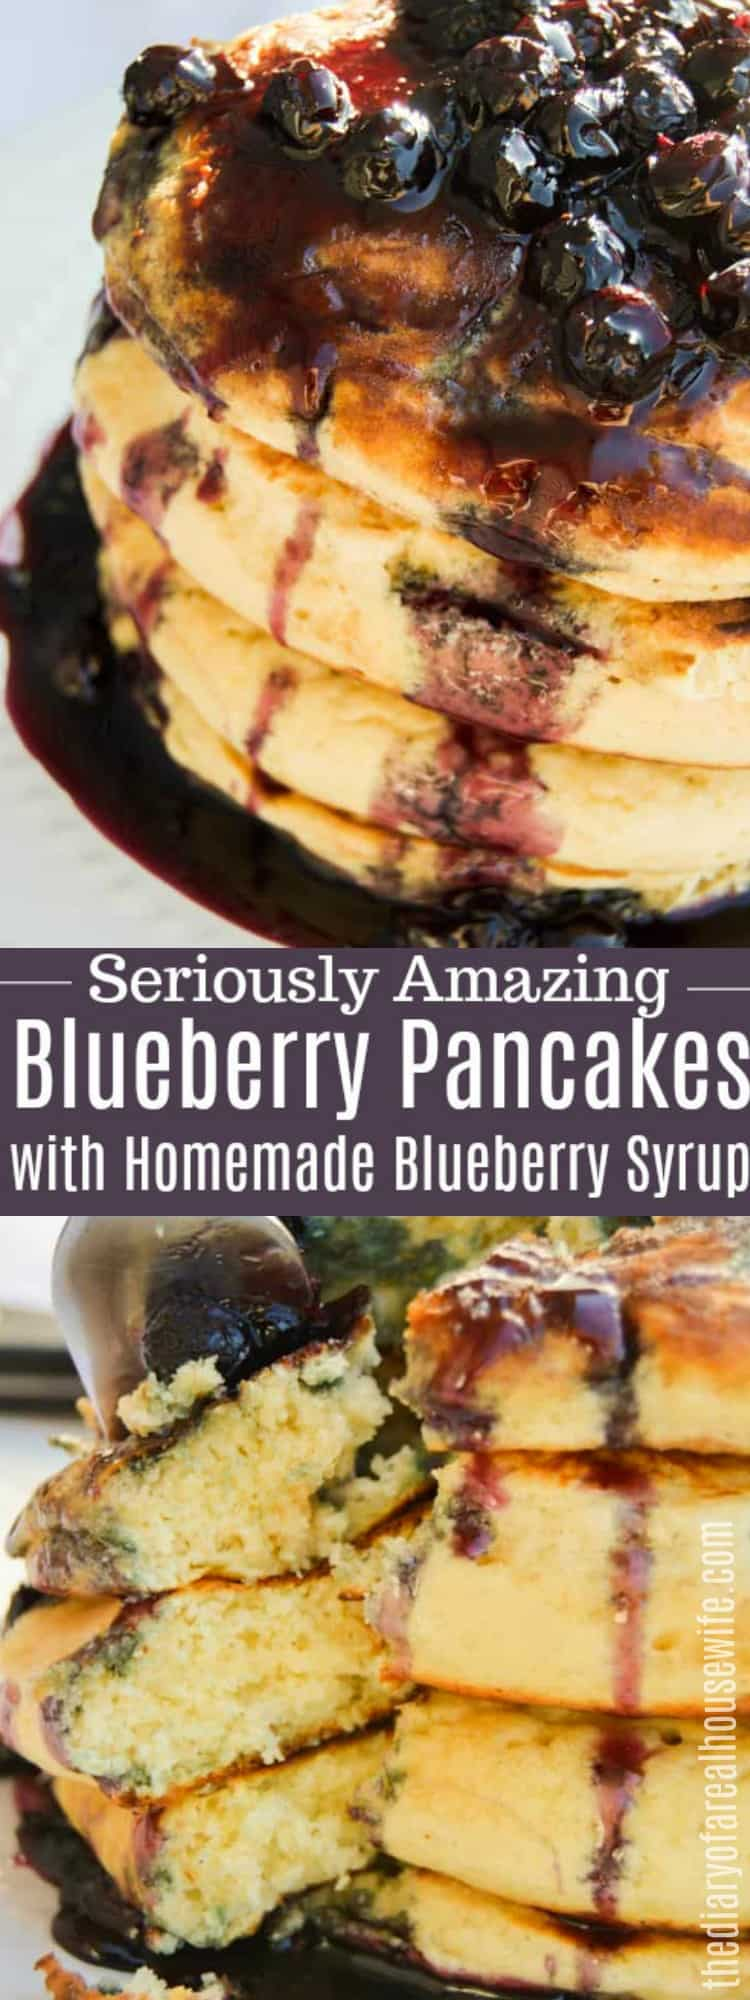 Blueberry Pancakes and Homemade Blueberry Syrup